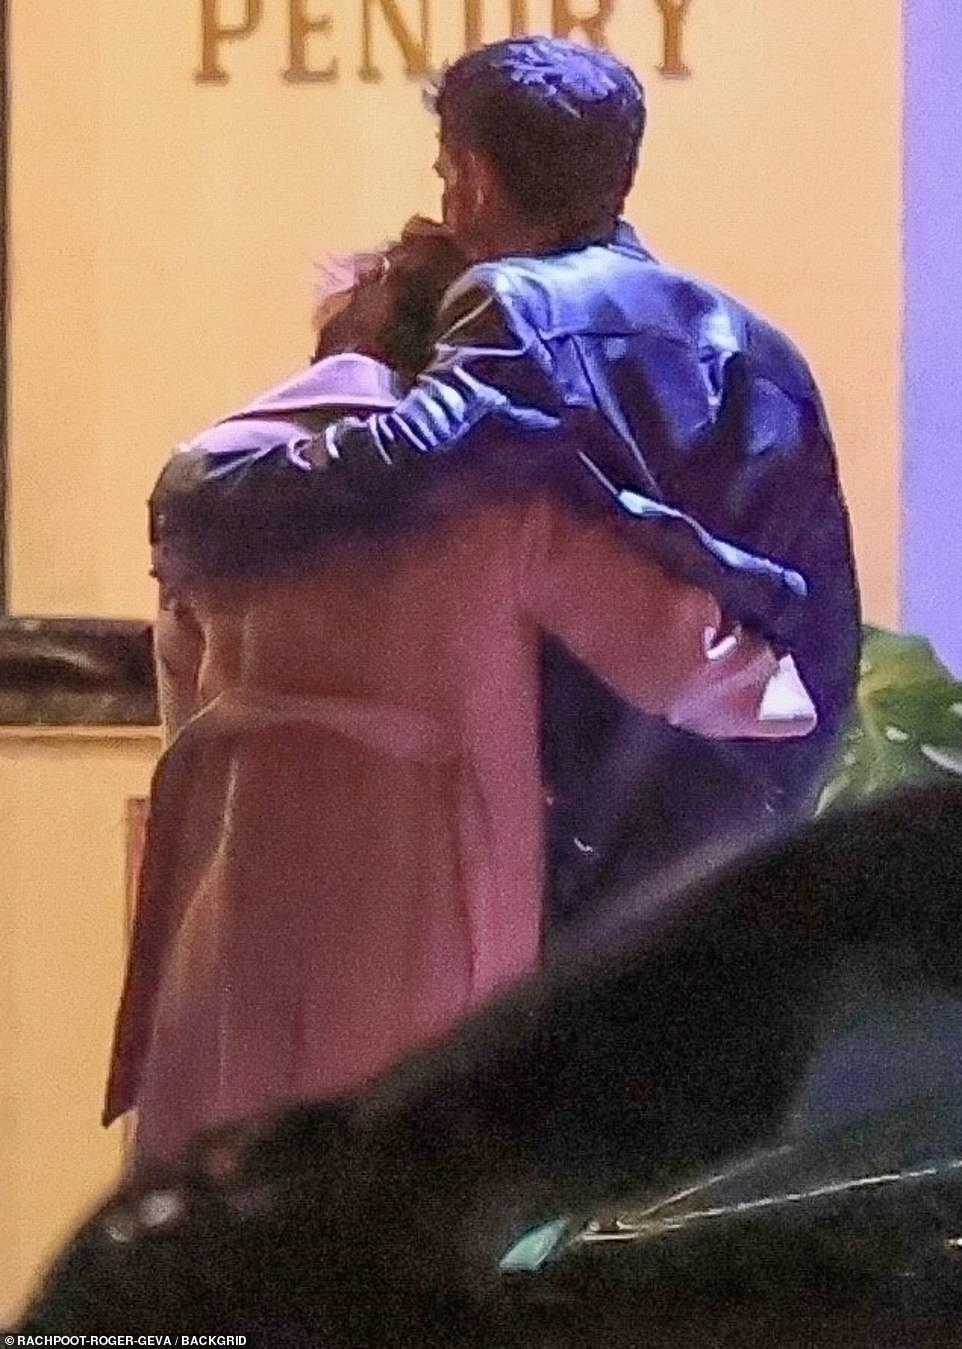 Just the two of us: Almost as soon as they stepped out of the car, their arms were intertwined together